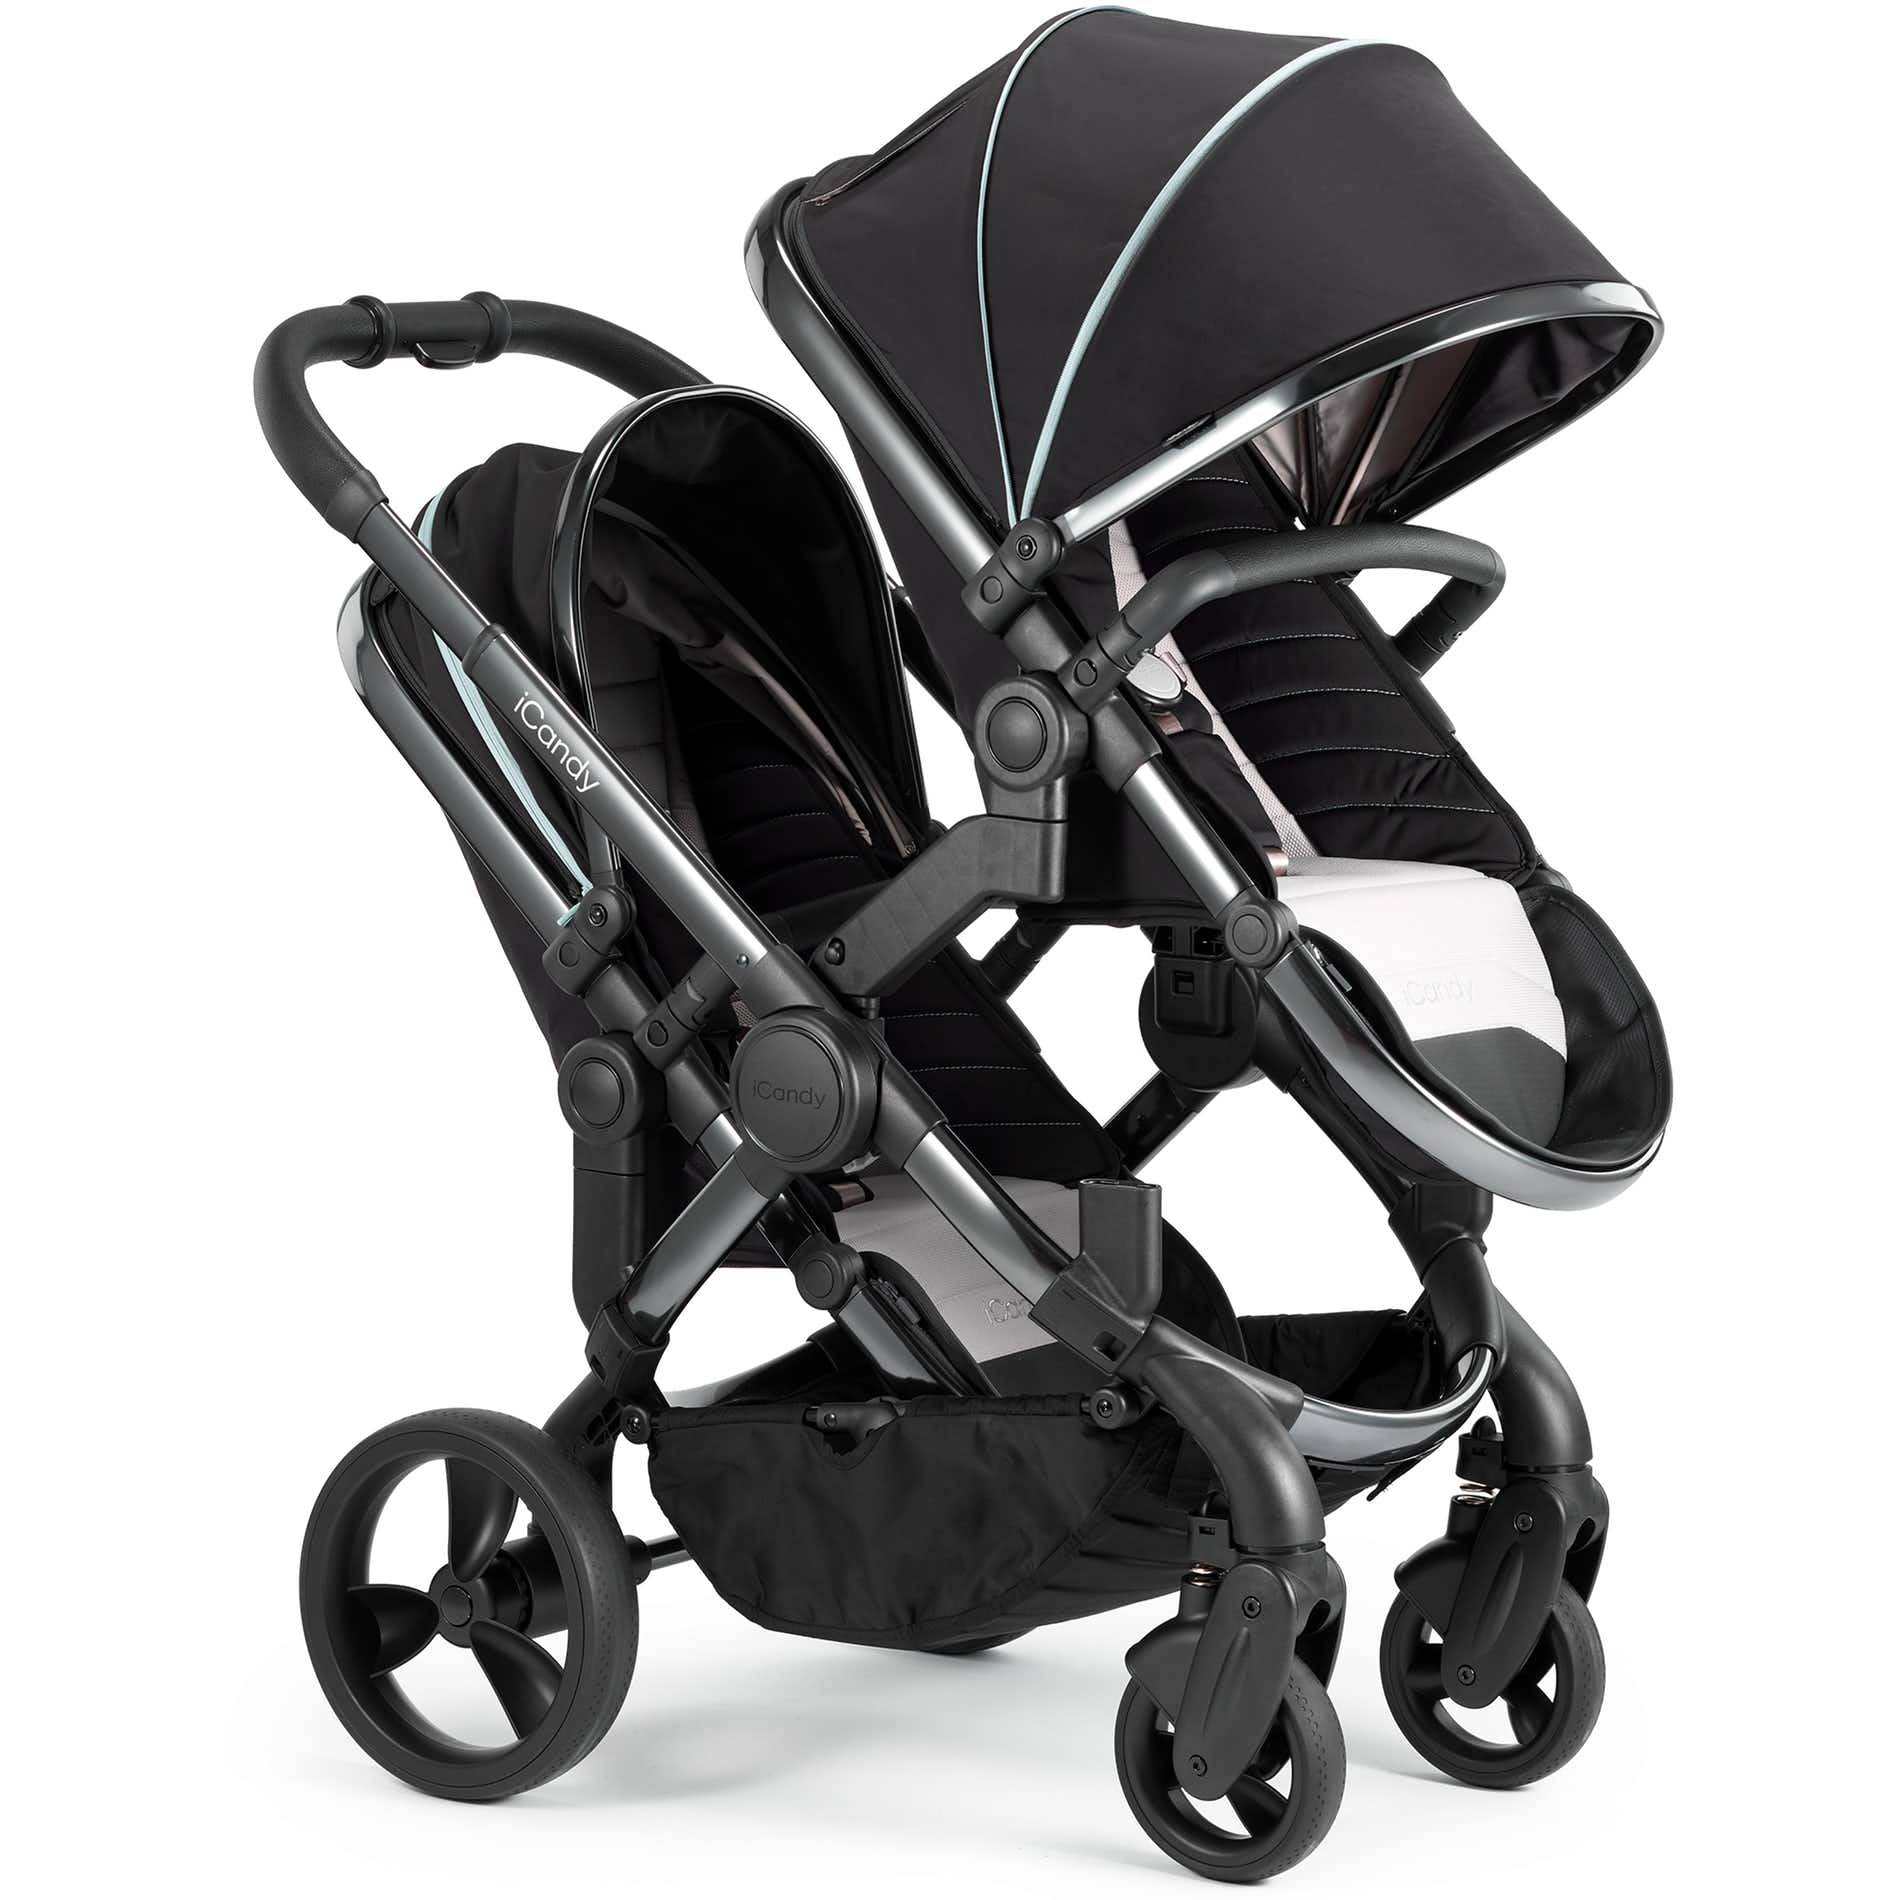 Egg Stroller For Twins Icandy Peach Blossom Double Pushchair Beluga With Phantom Chassis